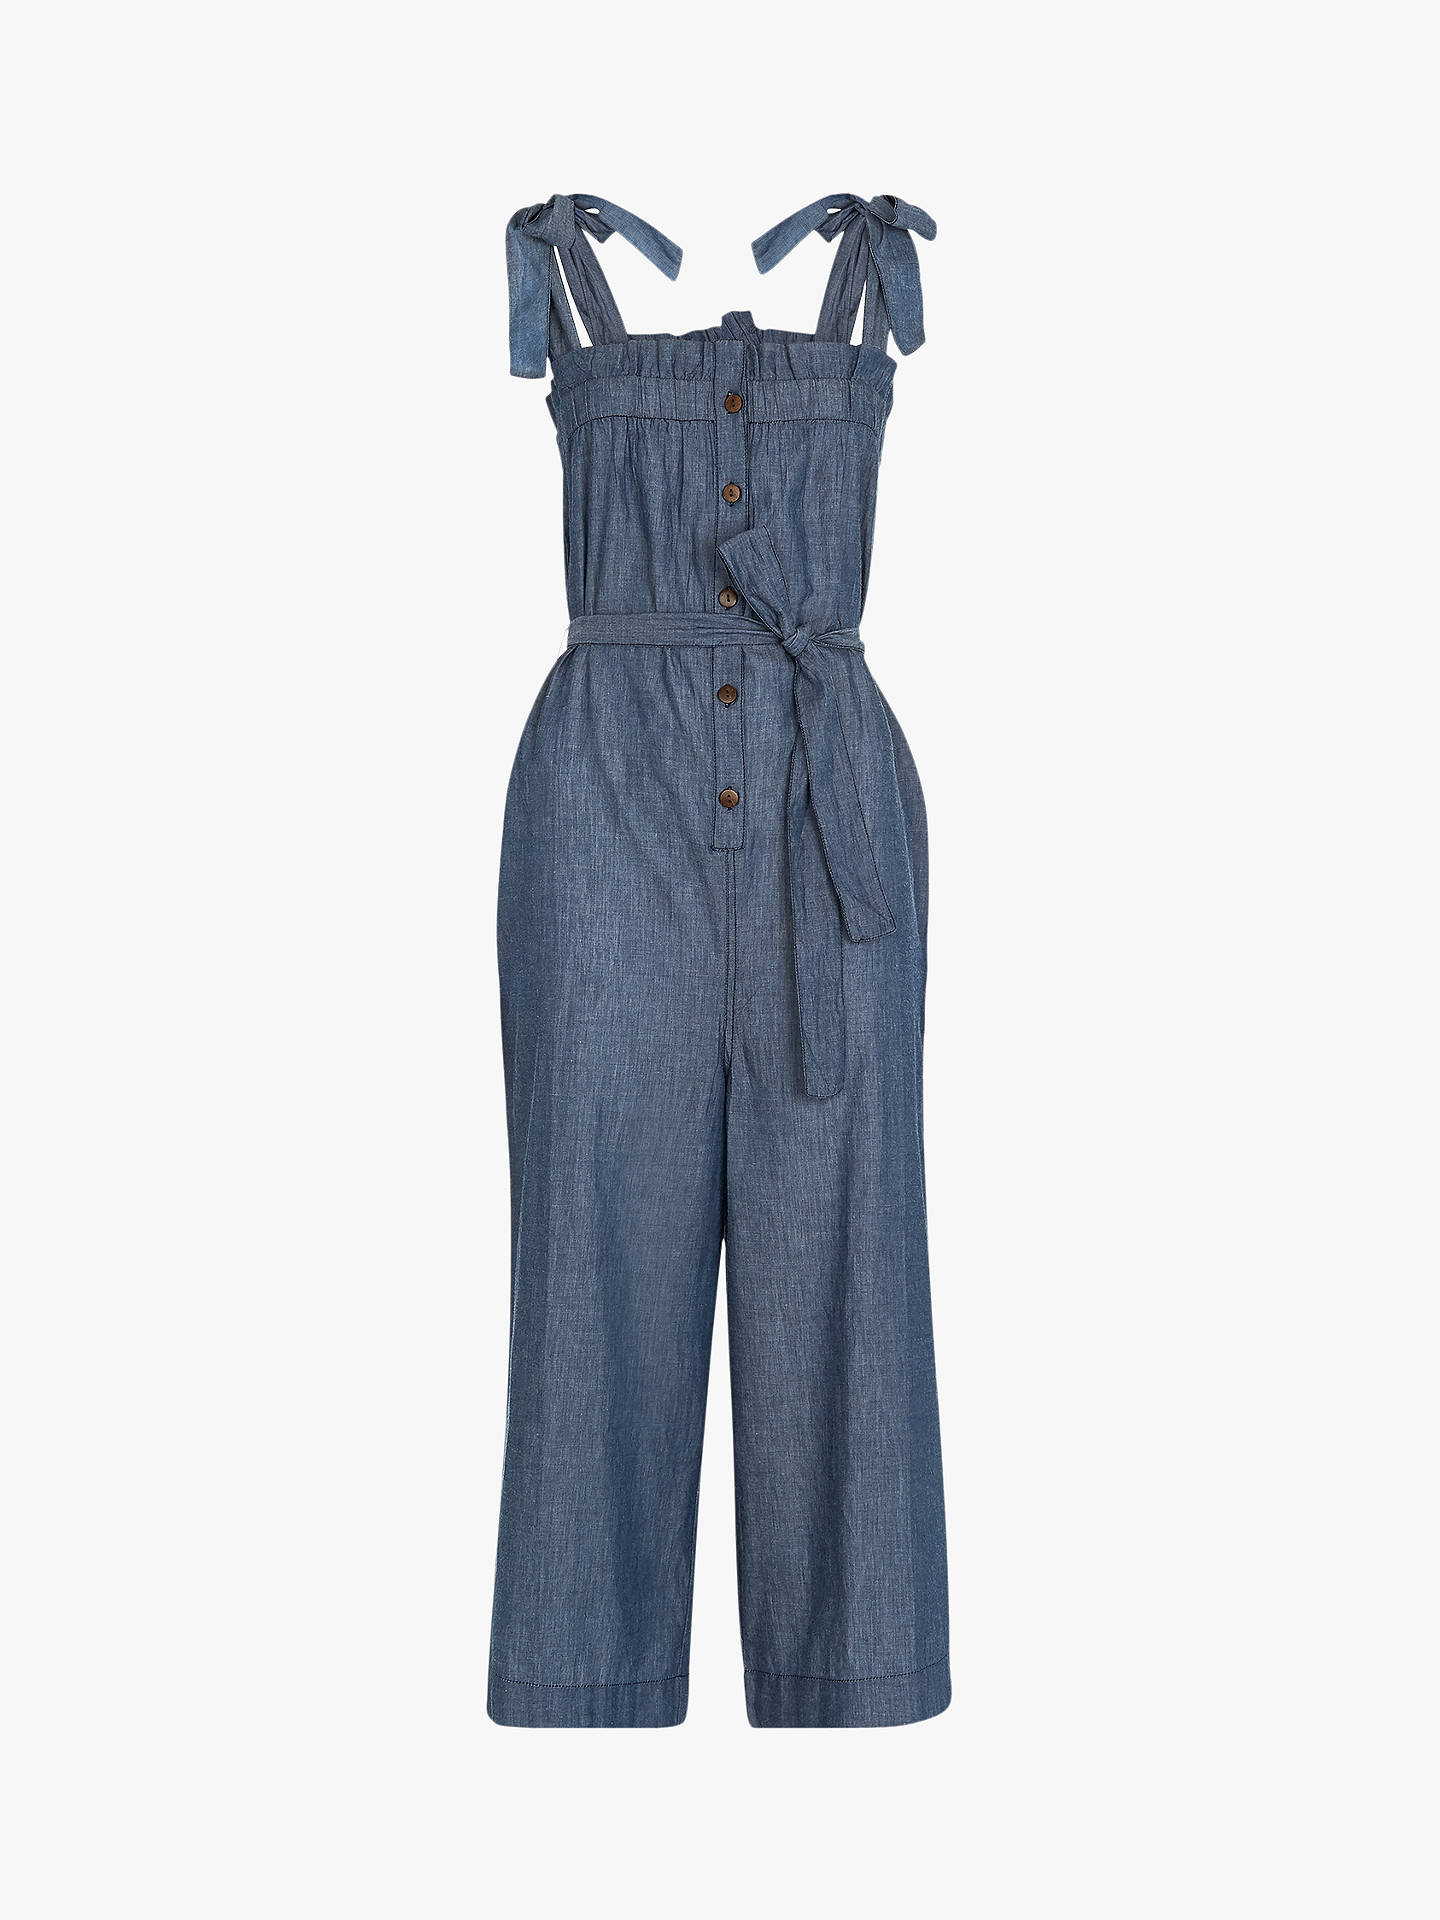 8e205f37e830 ... Buy Whistles Tie Shoulder Chambray Jumpsuit